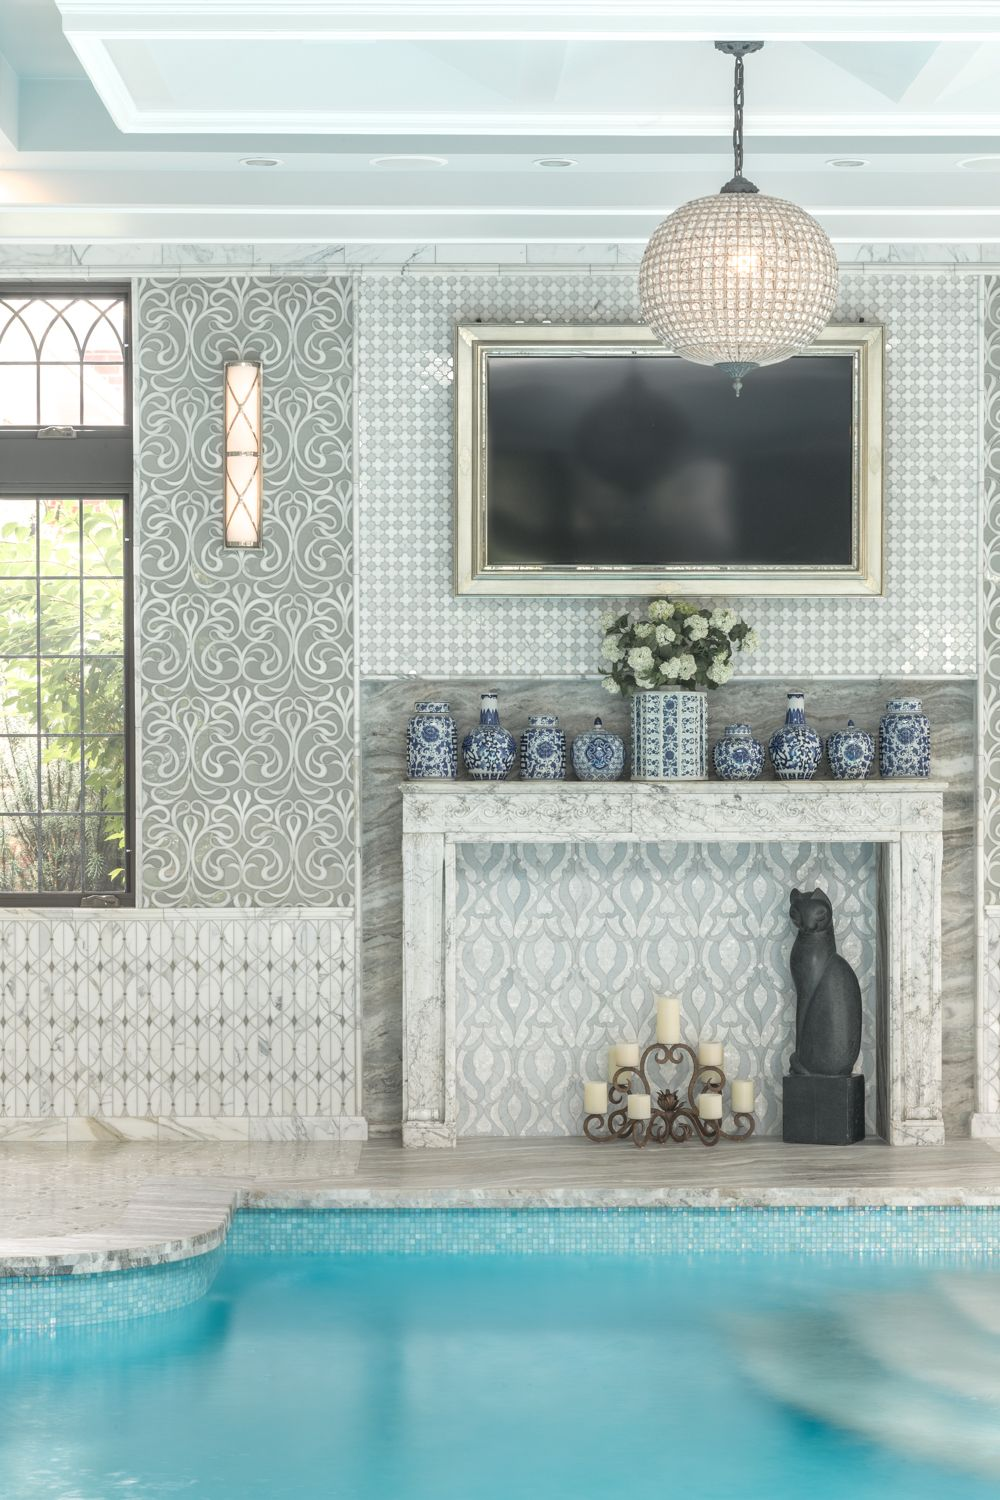 Artistic Tile I Waterjet Mosaics I This Outstanding Yonkers NY - Fred's floor tile